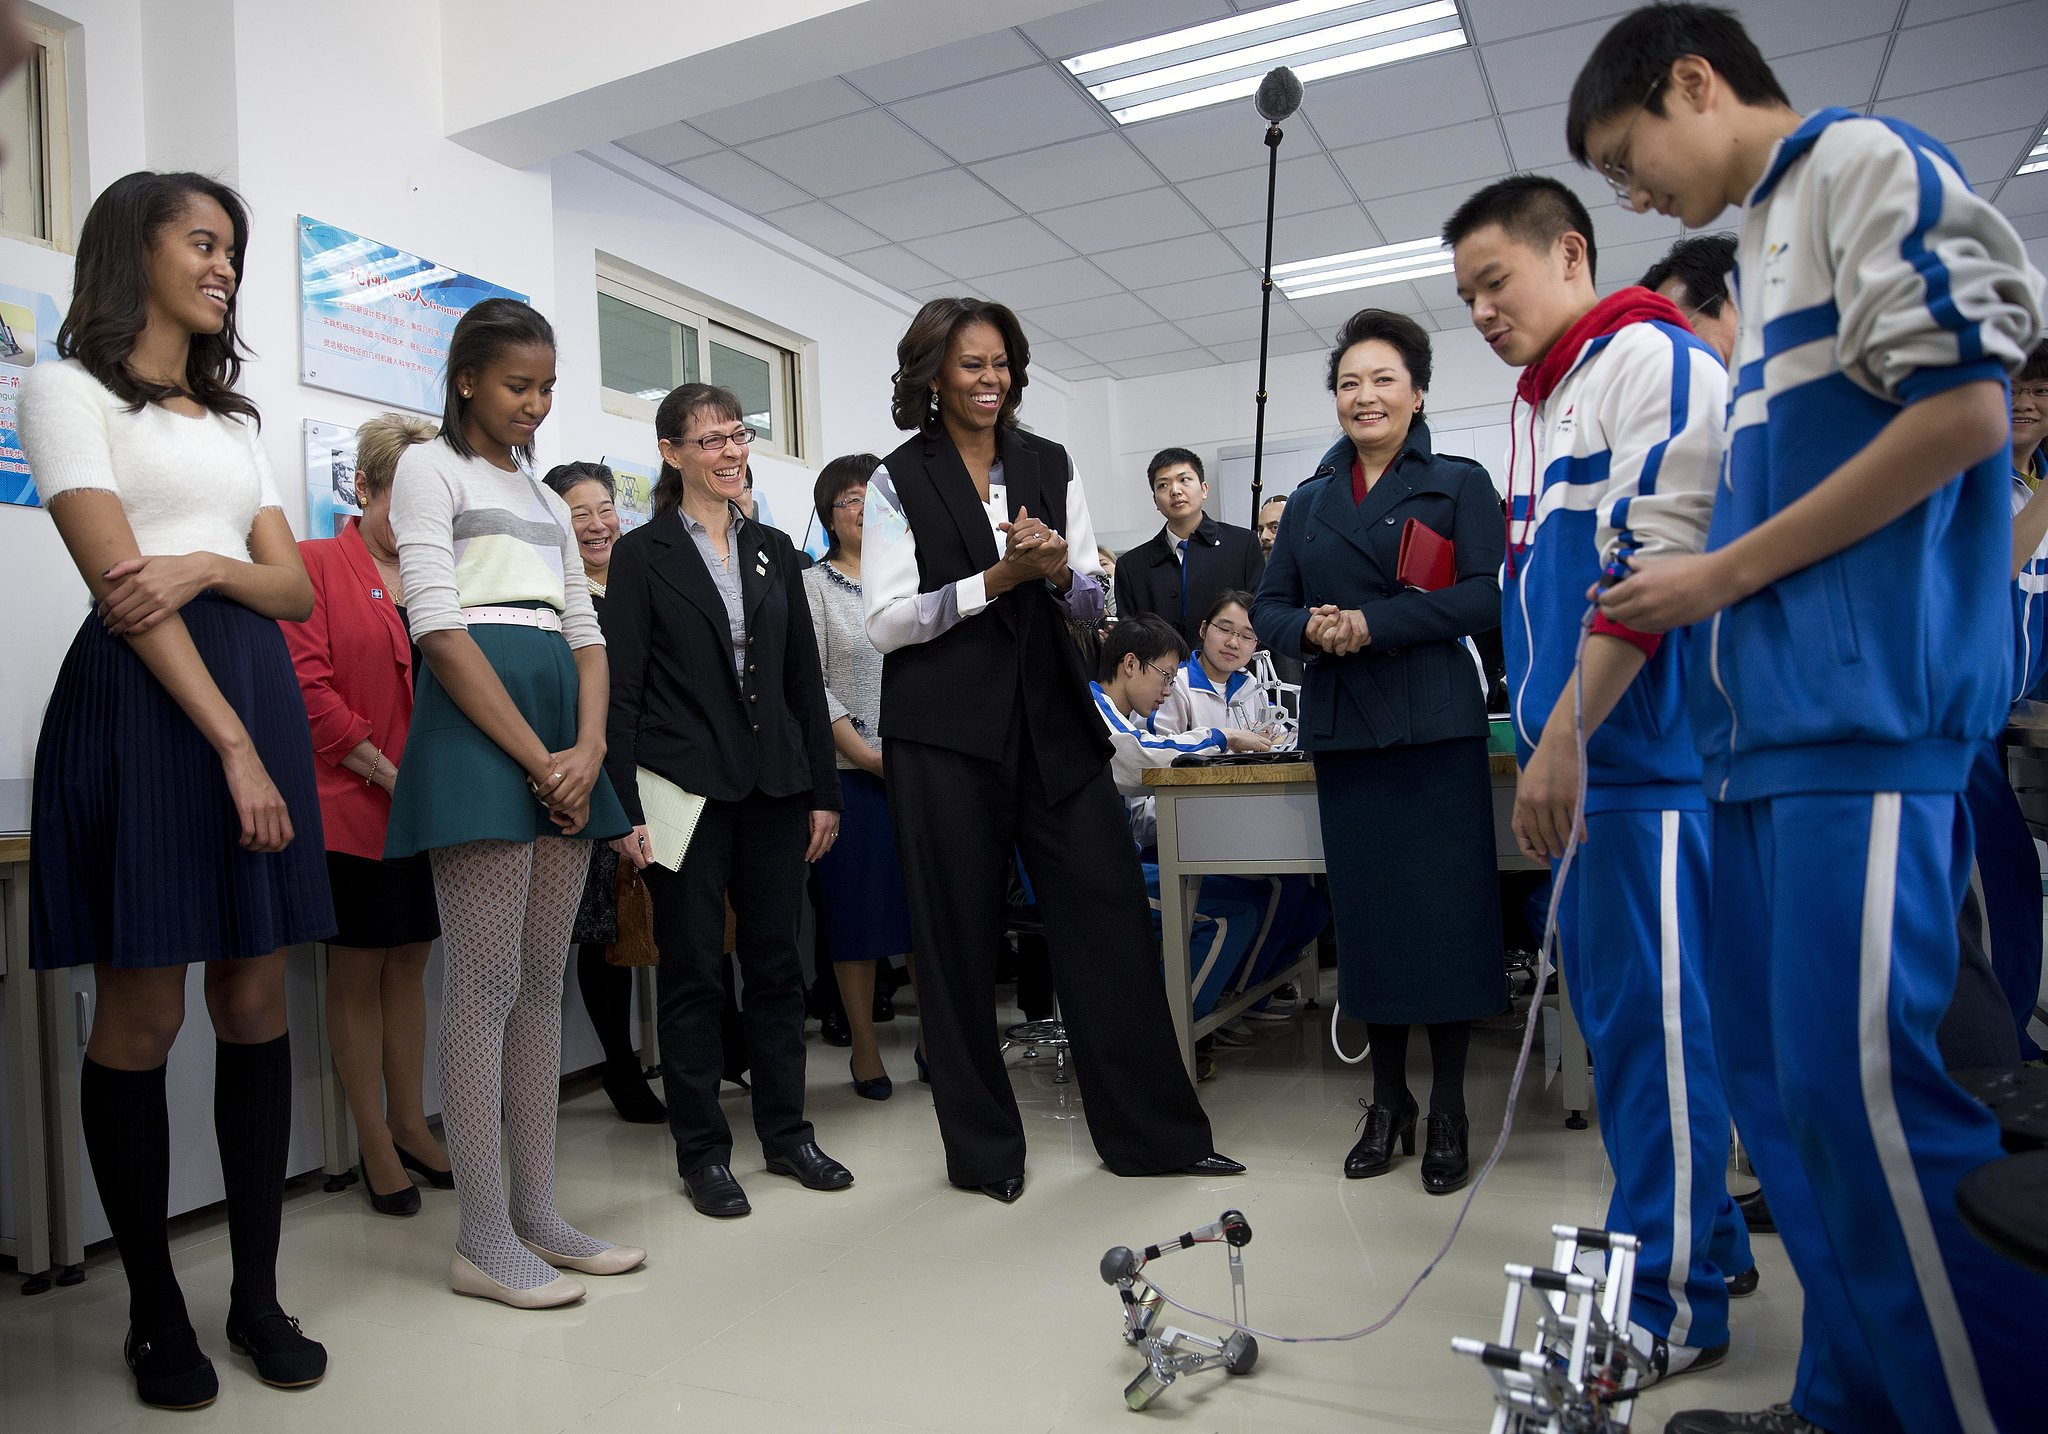 Students showed Michelle, Malia, and Sasha remote-controlled mechanical robots.